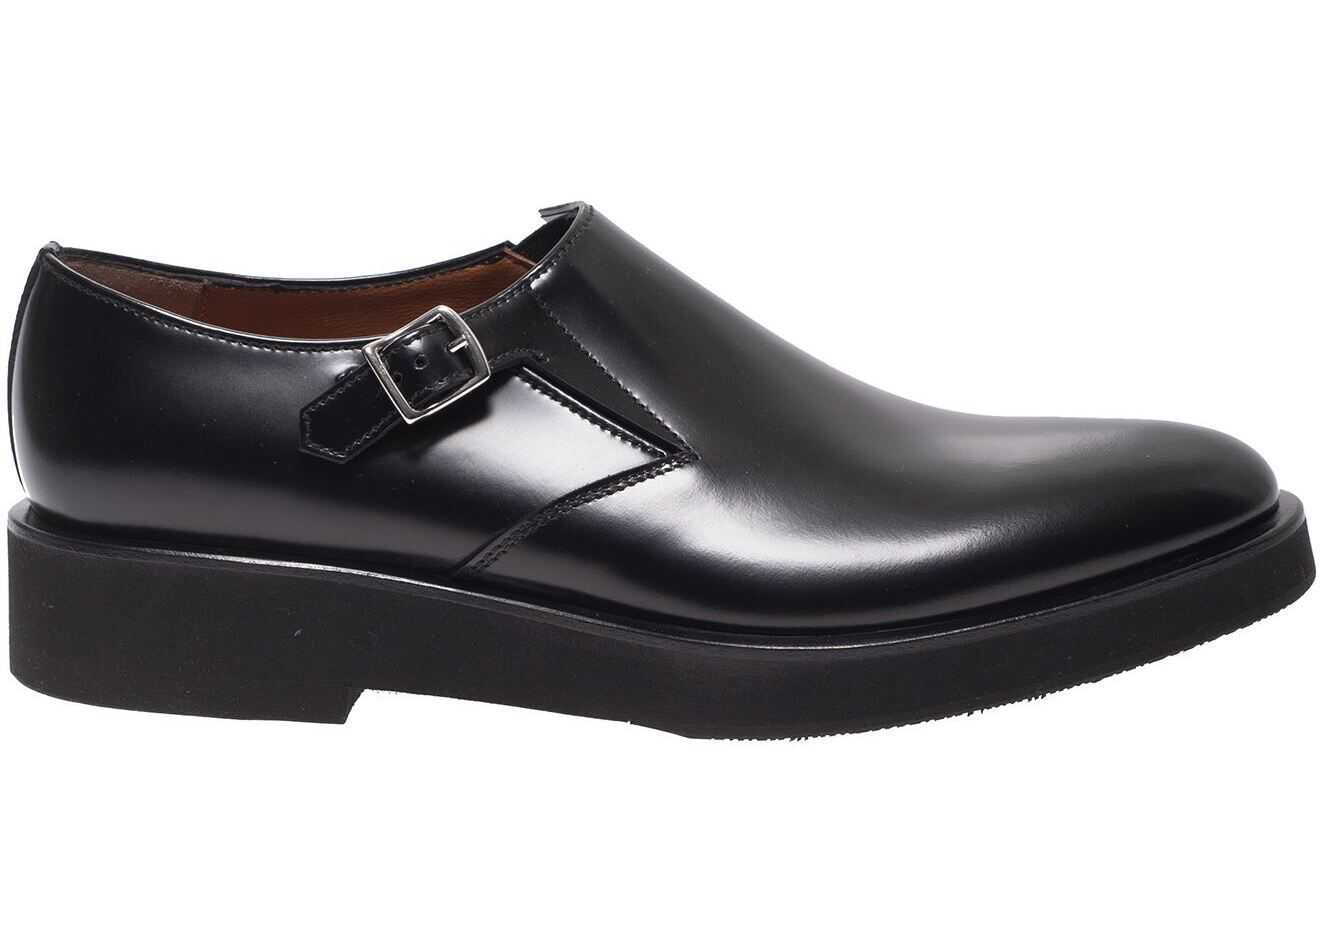 Monk Strap Shoes In Black thumbnail